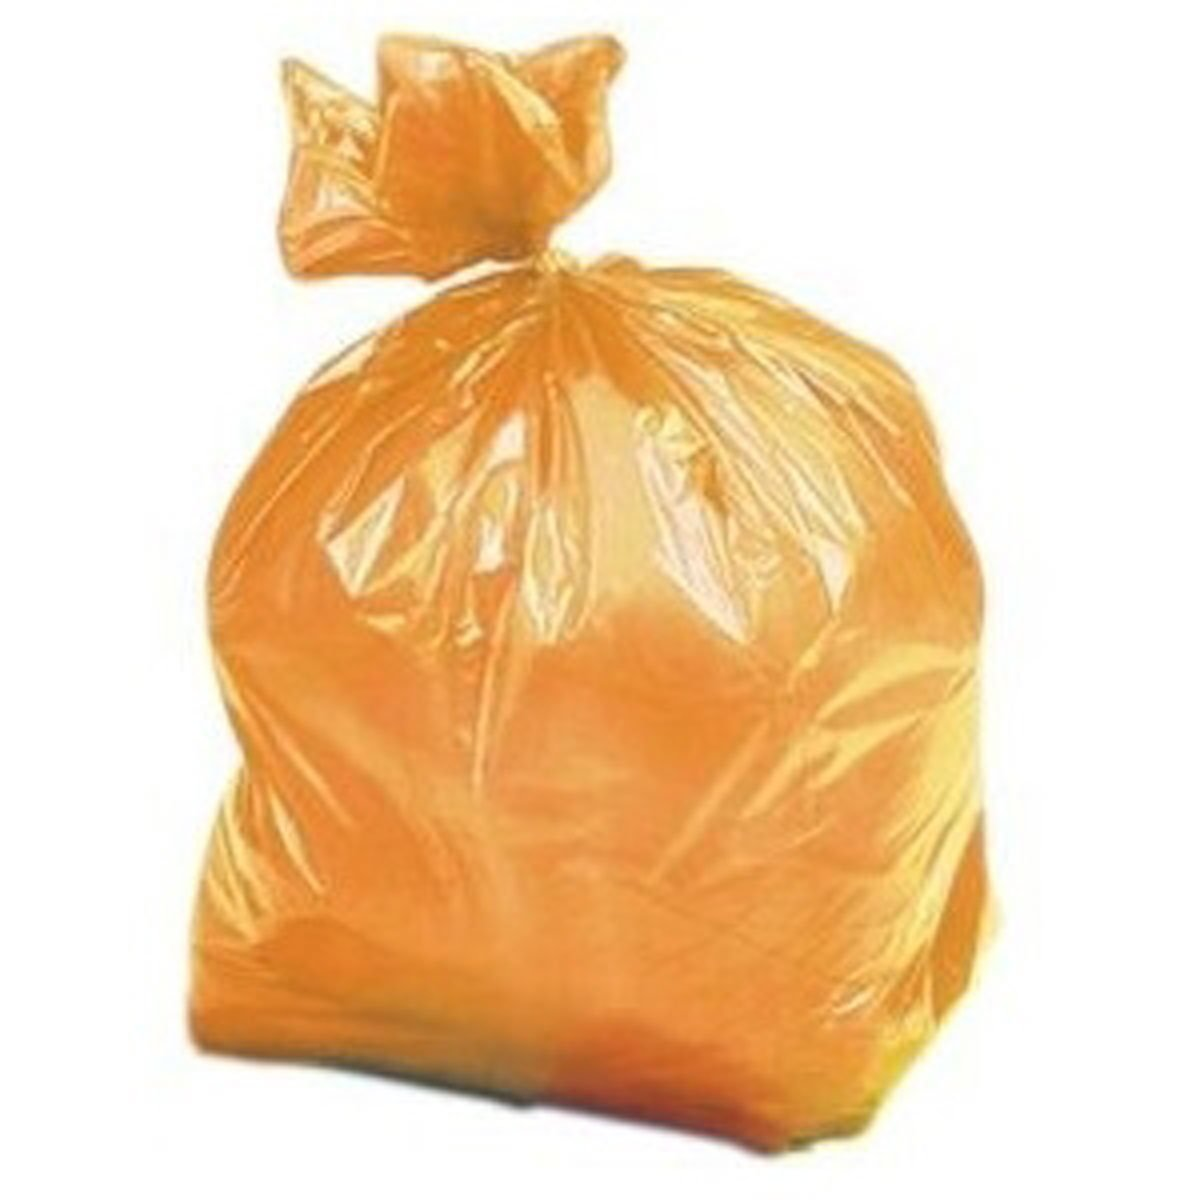 Janilec Orange Refuse Bags 130g - Pack of 200